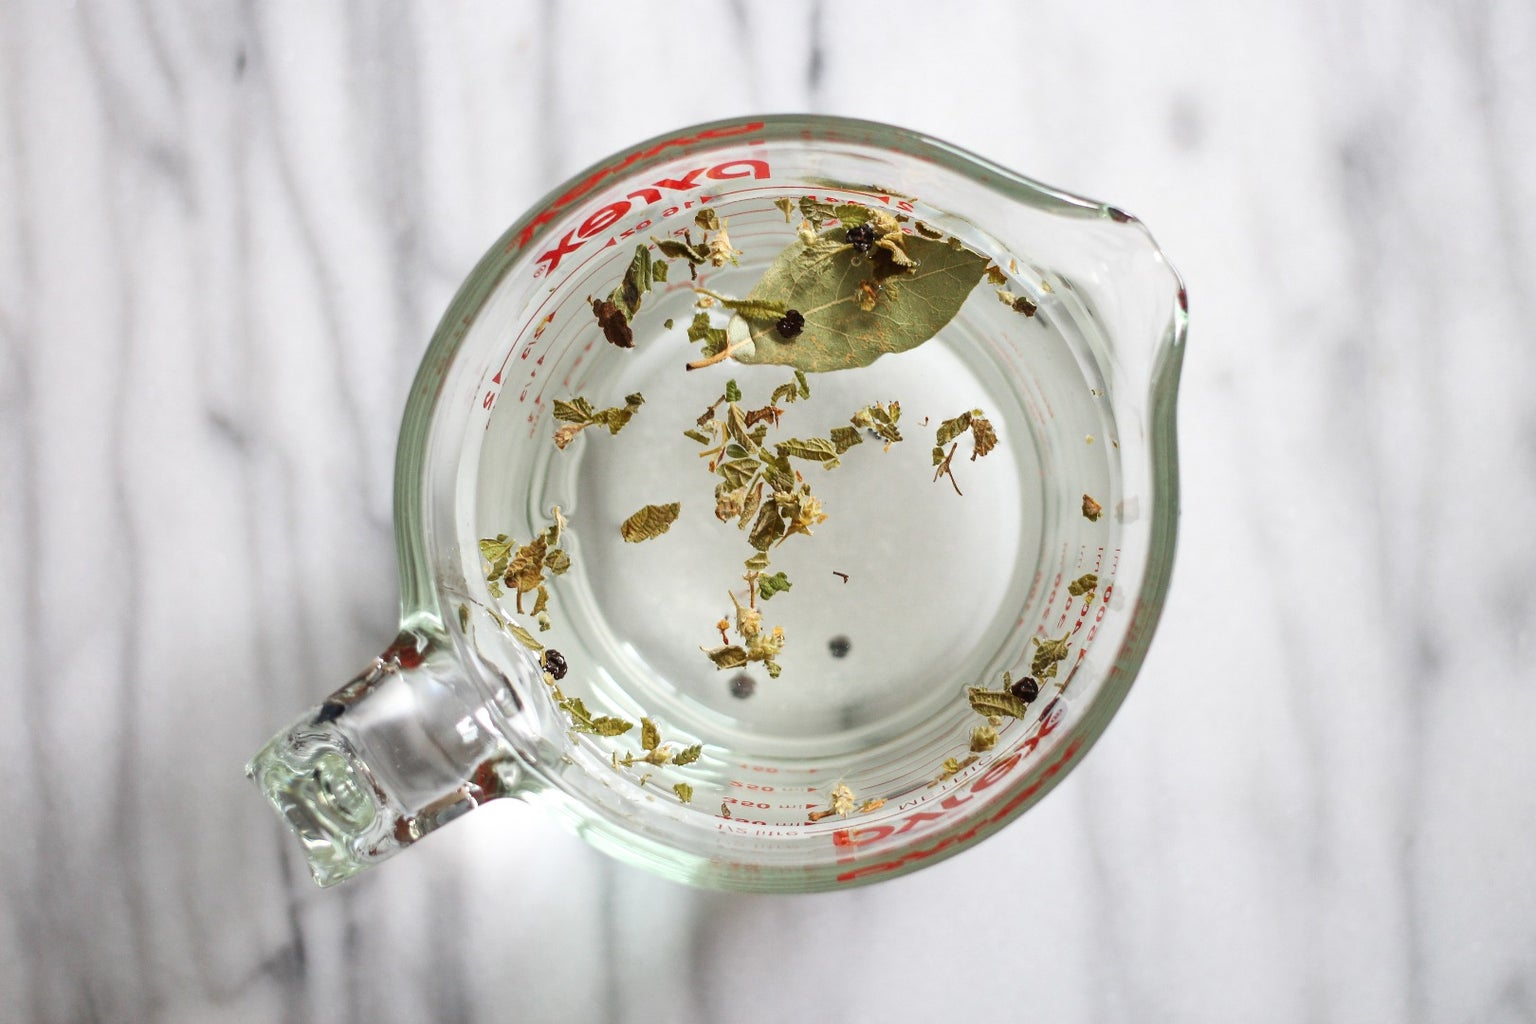 Heat Up Your Pickling Mix